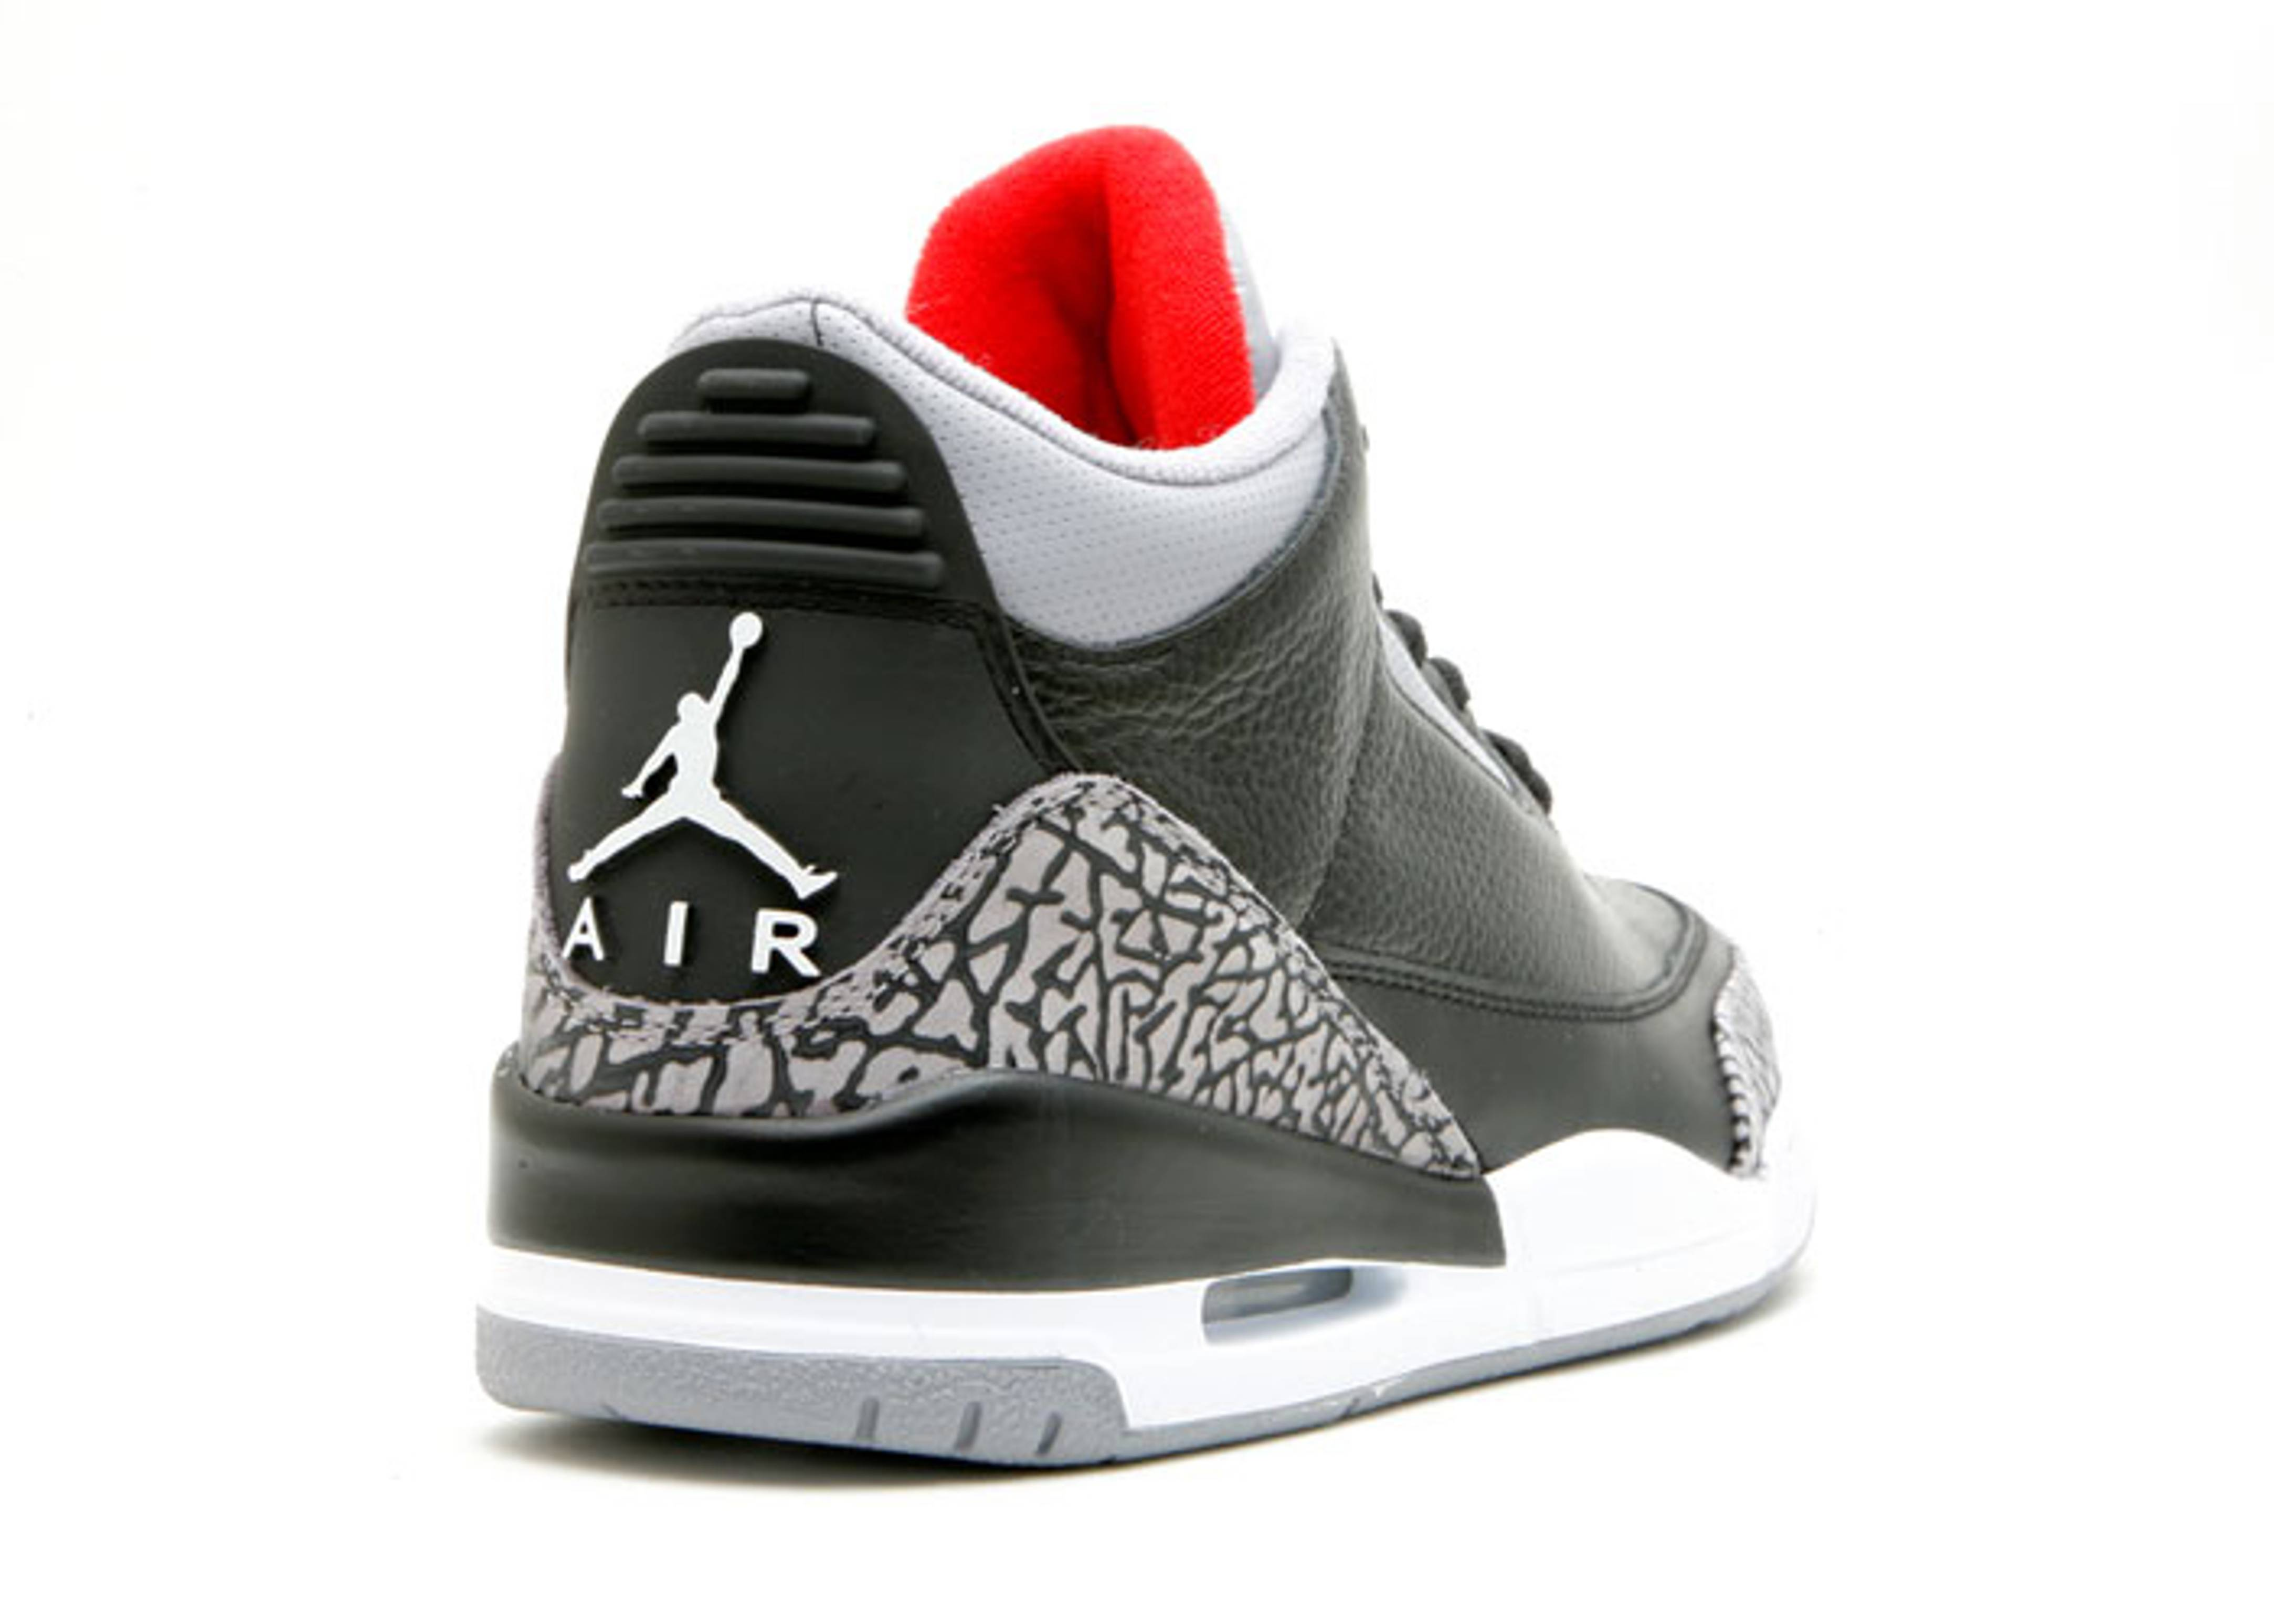 best sneakers 7b052 44292 ... air jordan 3 retro Jordan 3 Retro Black Cement Grey Countdown Pack ...